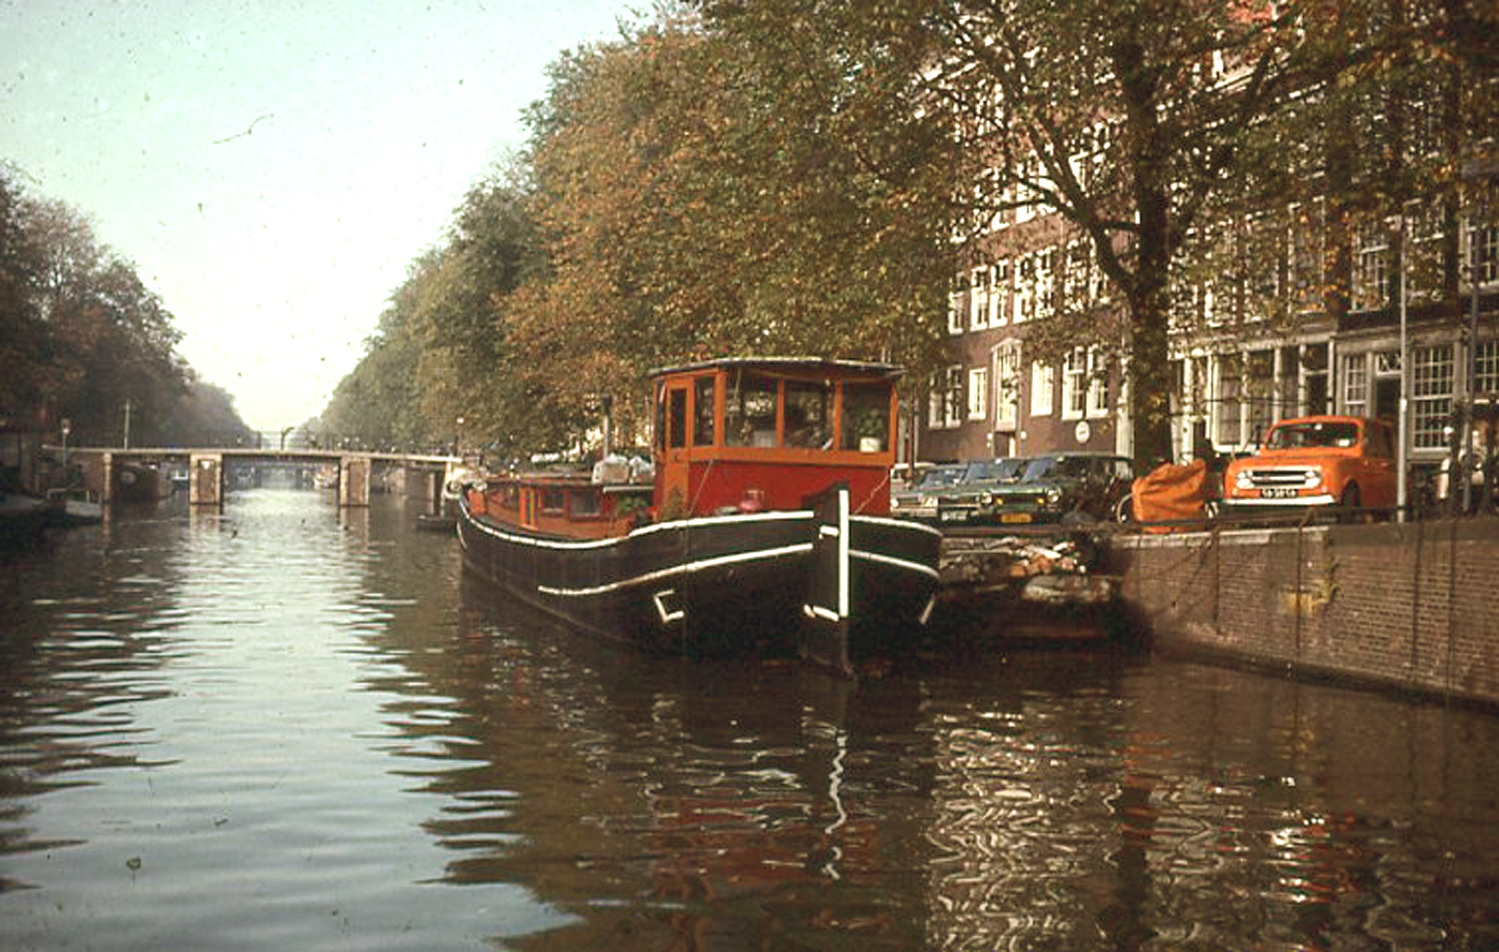 The houseboat docked at its spot on the Prinsengracht.